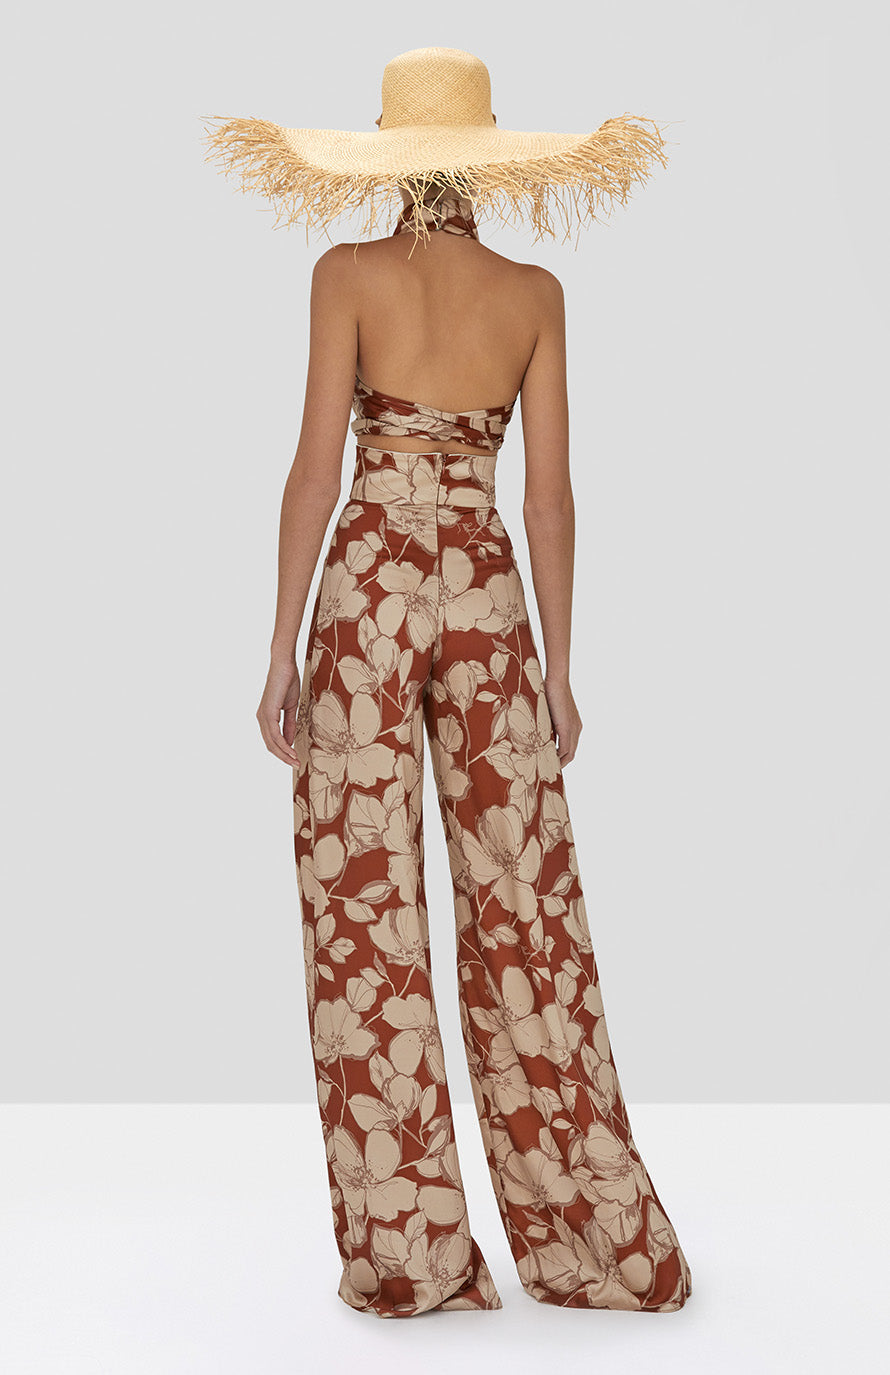 Alexis Bala Crop Top and Haruna Pant in Sand Floral from the Spring Summer 2020 Collection - Rear View